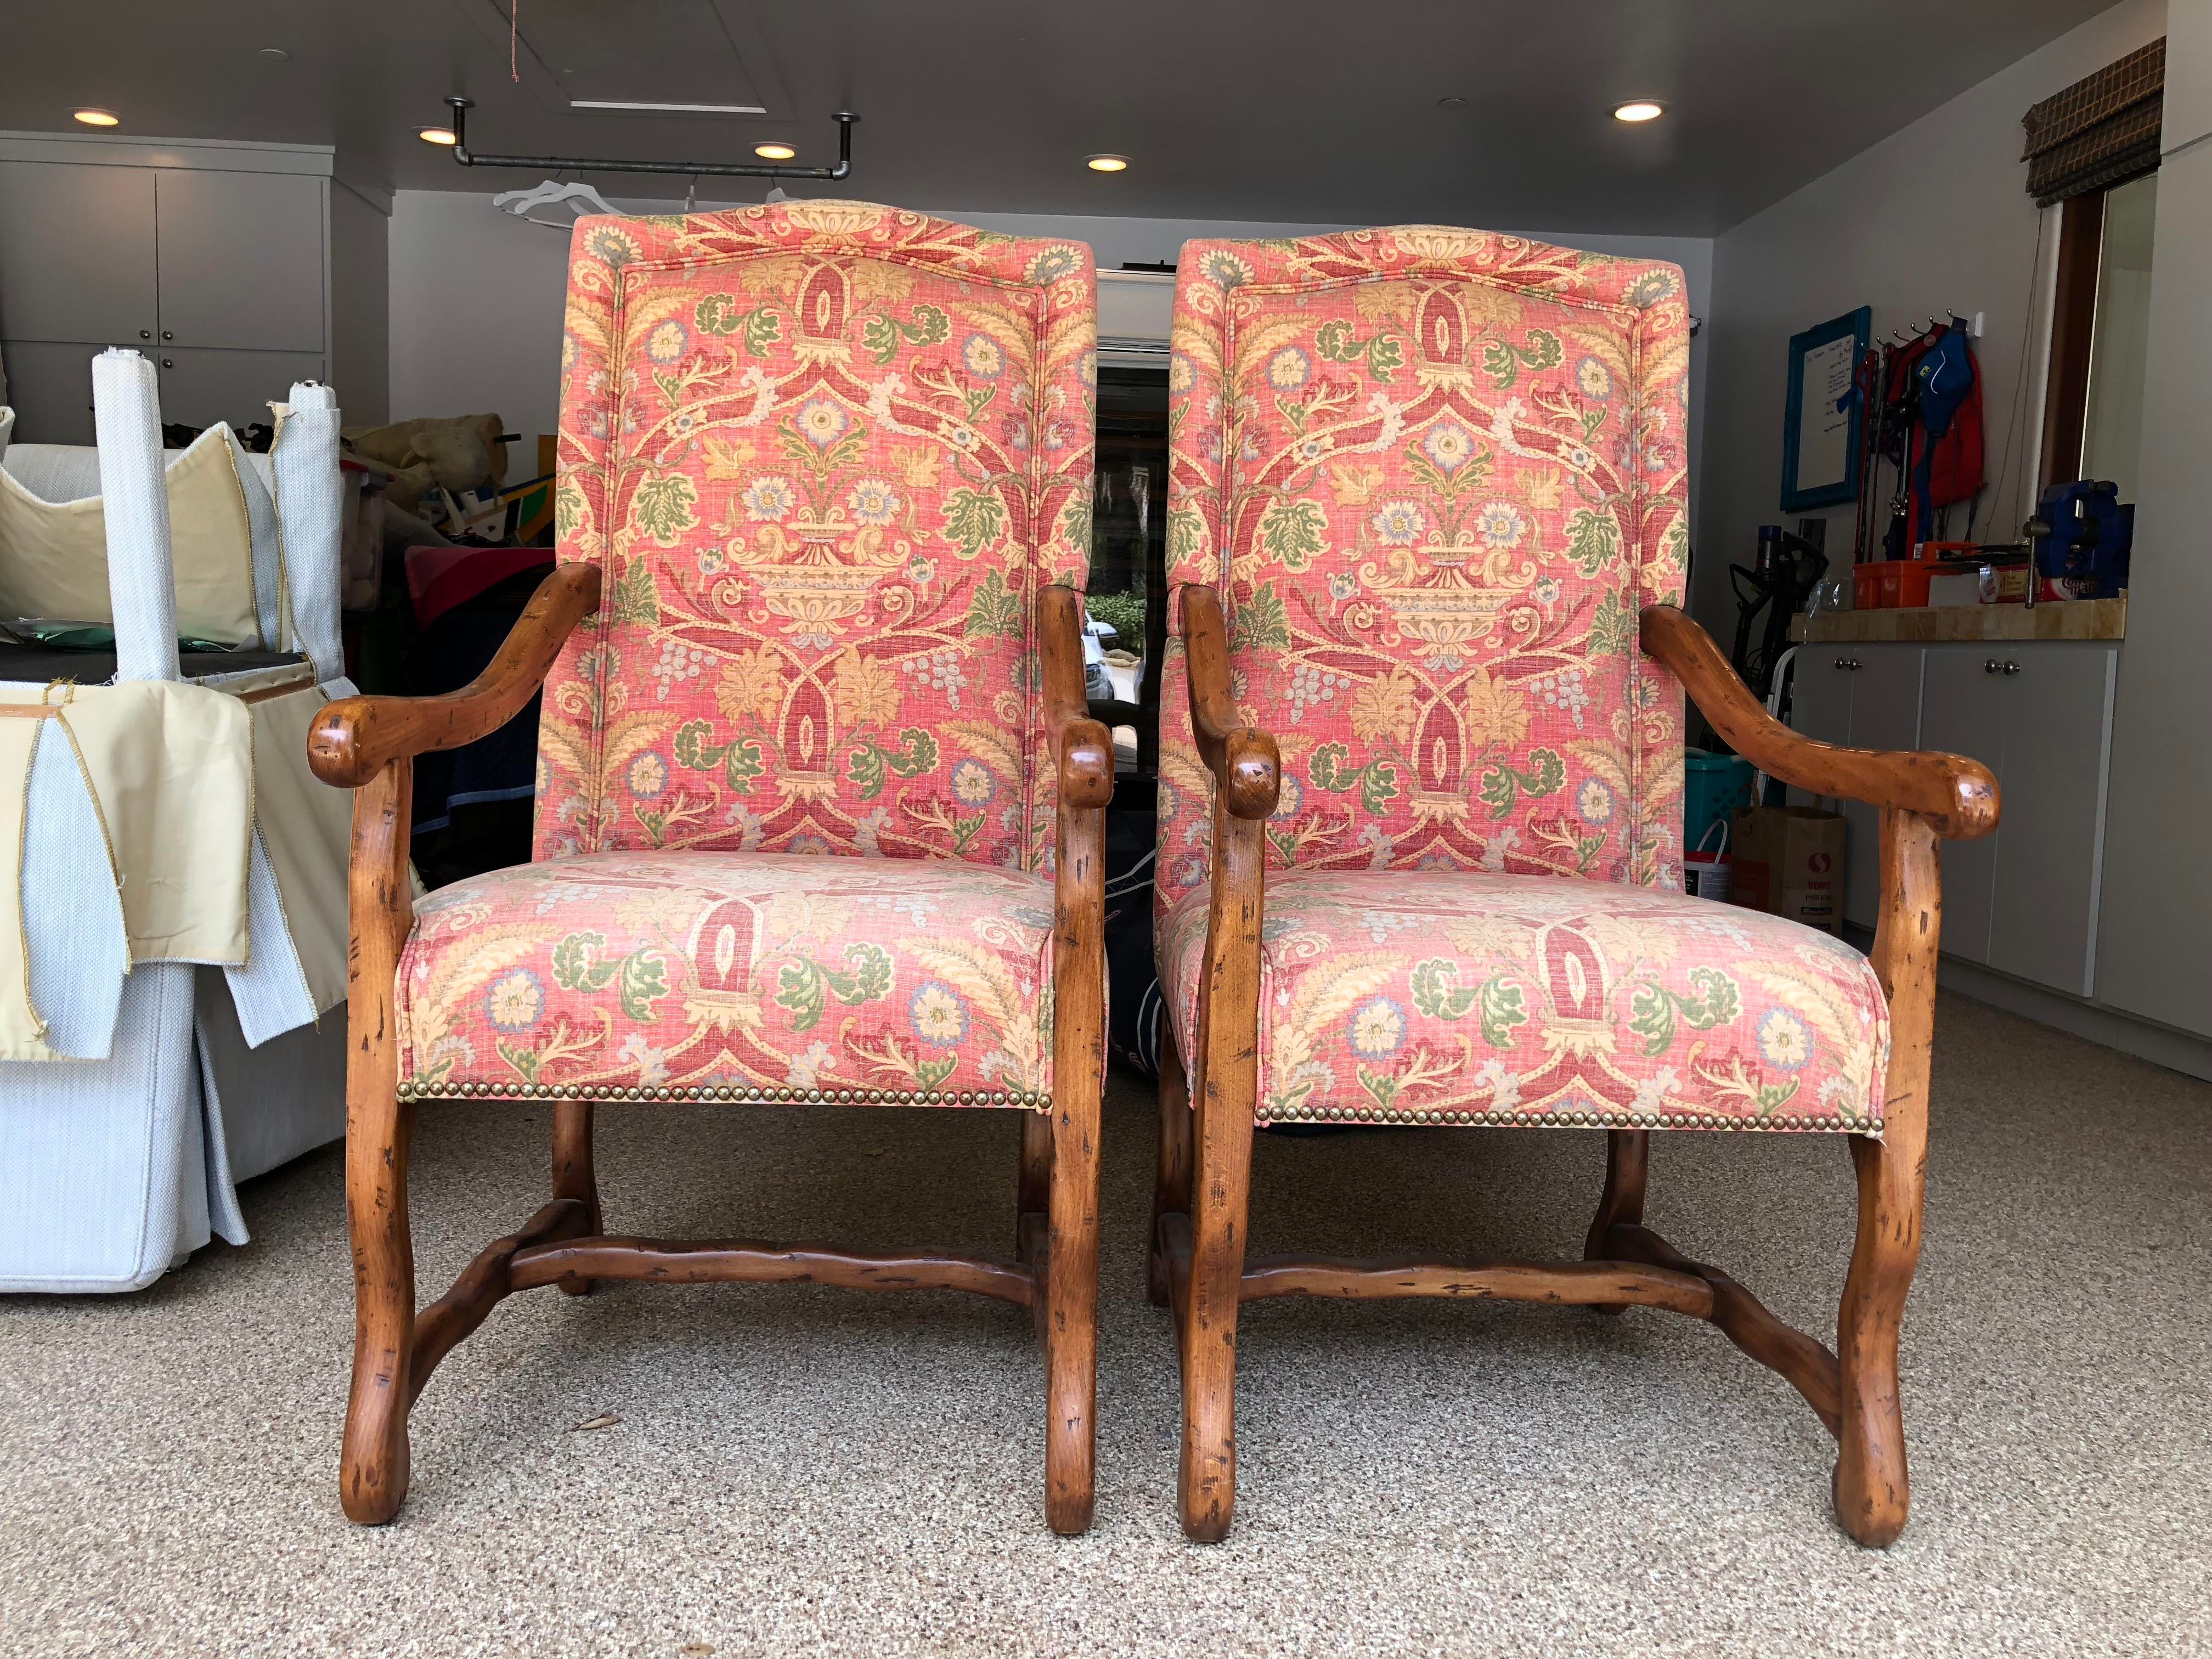 country french chairs upholstered director chair covers flat stick freemark designs provence style antique milano 2000s finish in custom thibaut